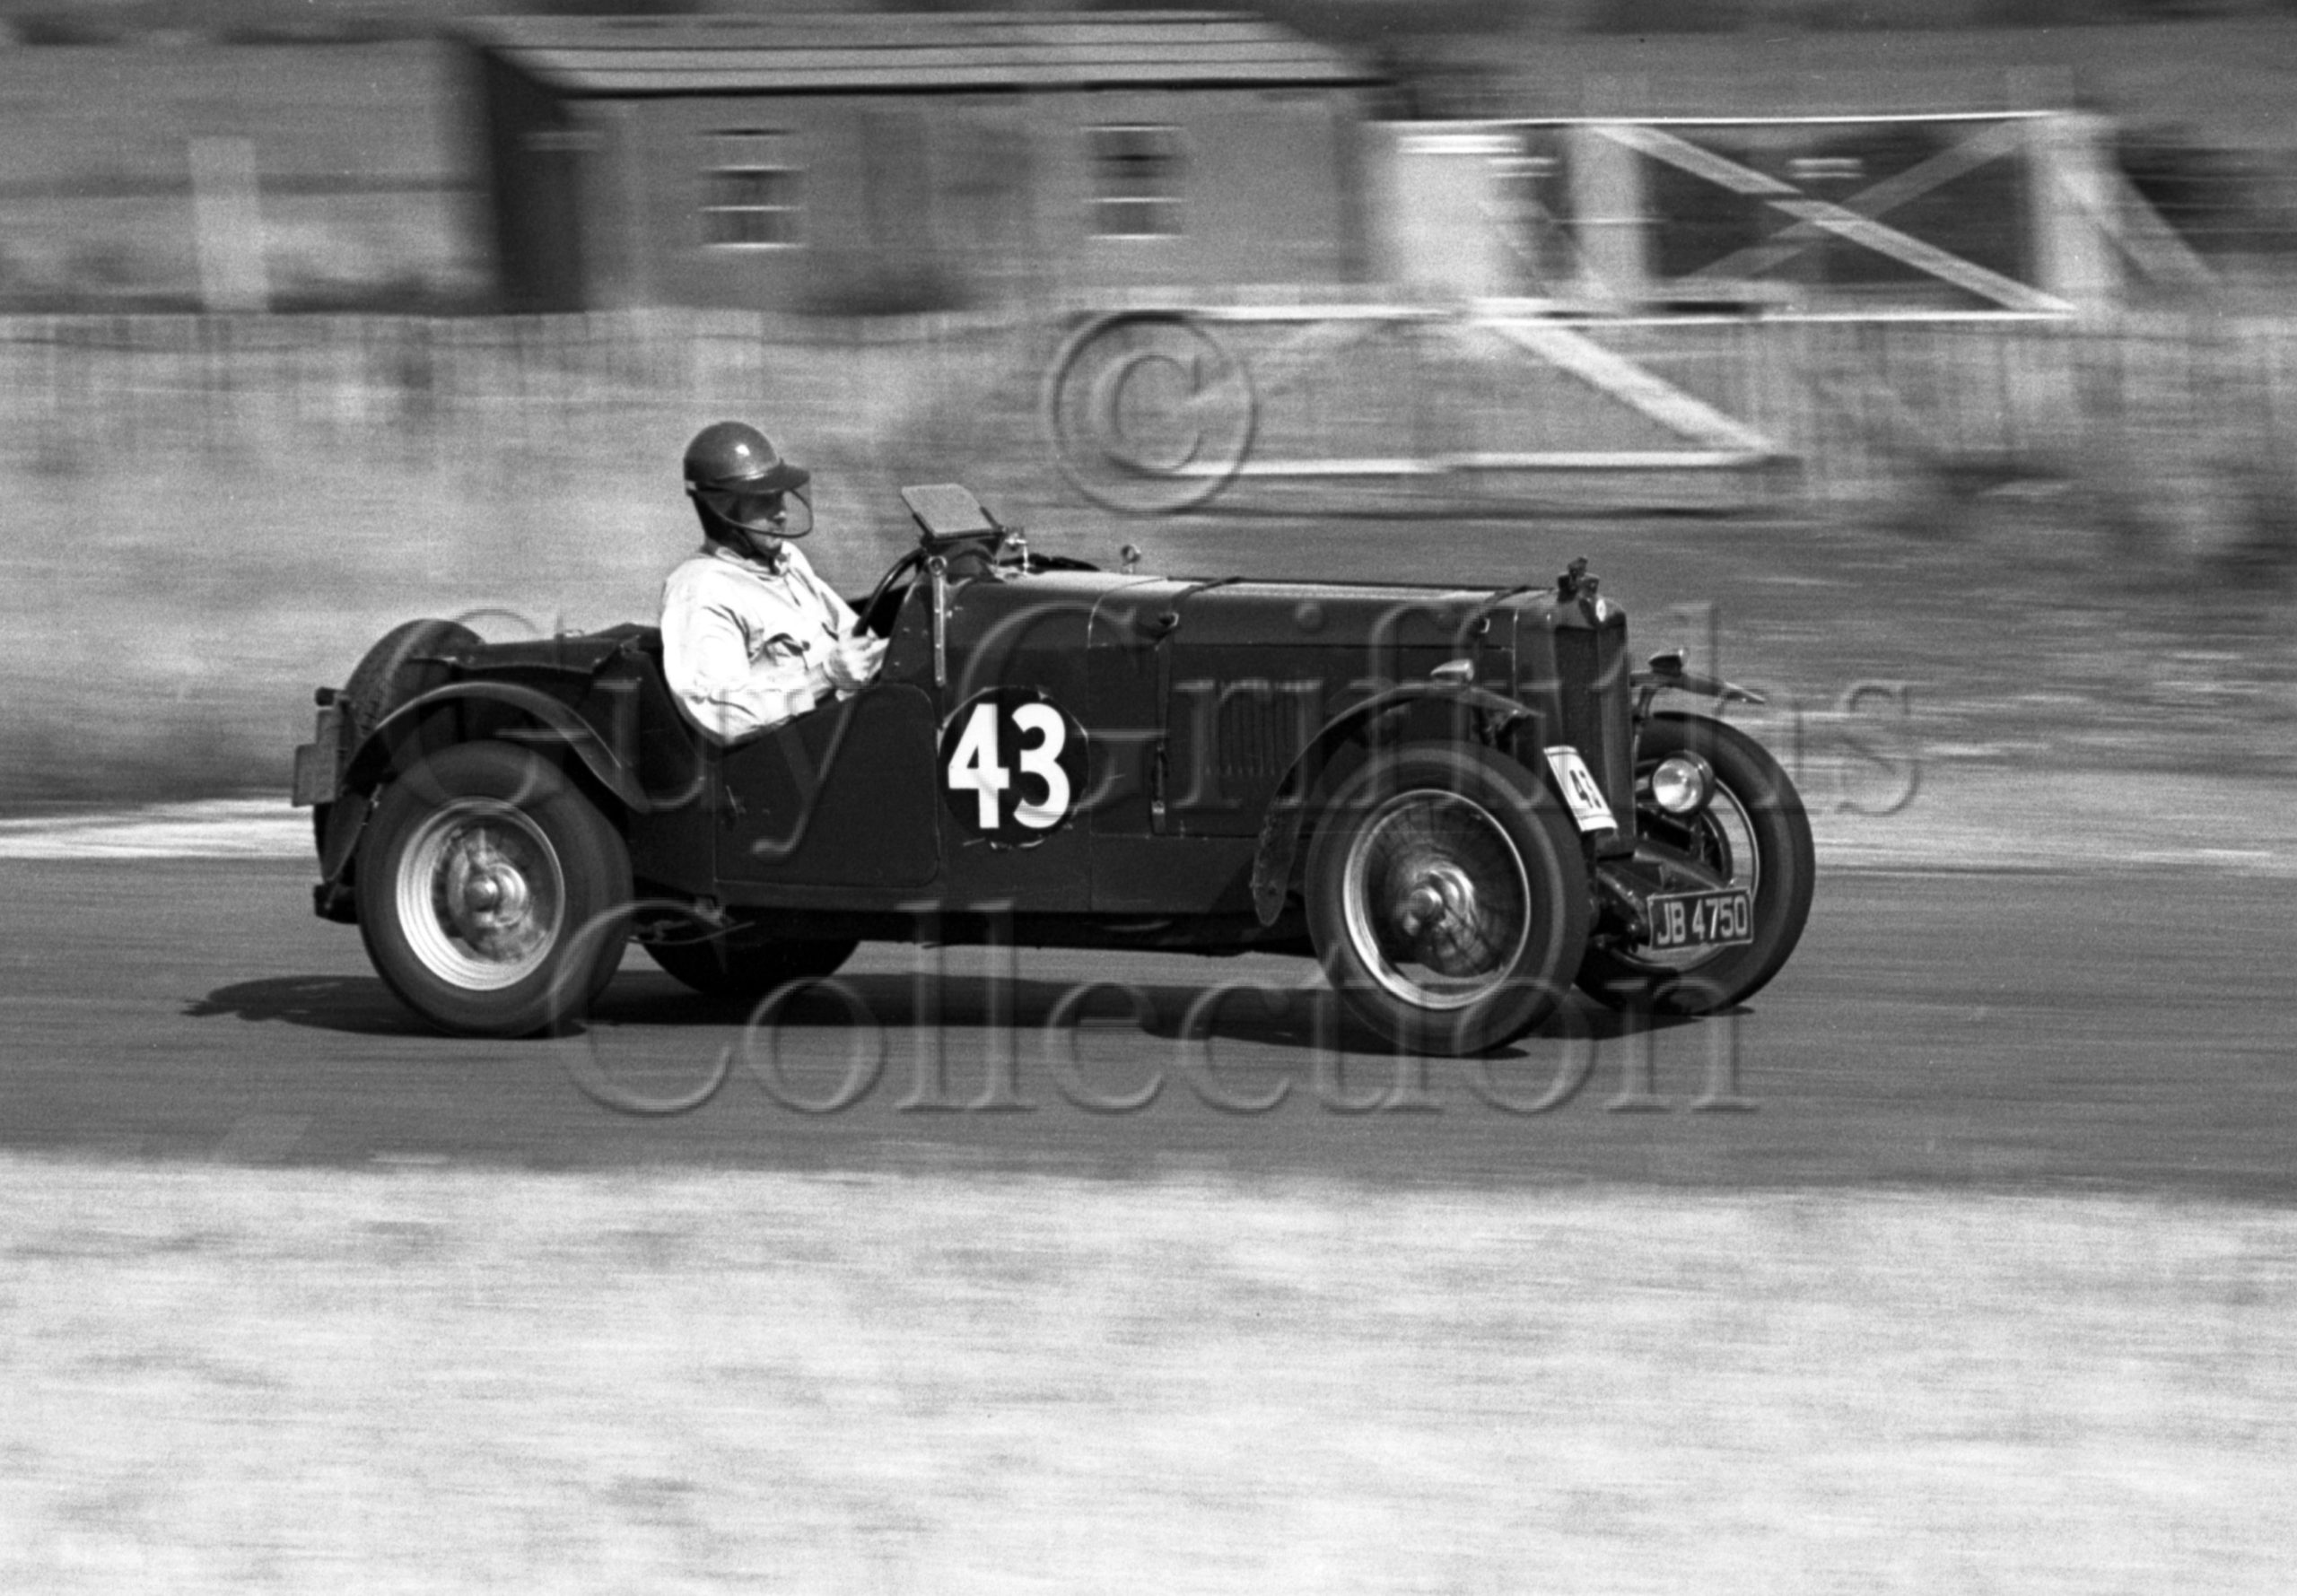 20-703–T-W-Dargue–MG–Goodwood–13-08-1949.jpg - Guy Griffiths Collection